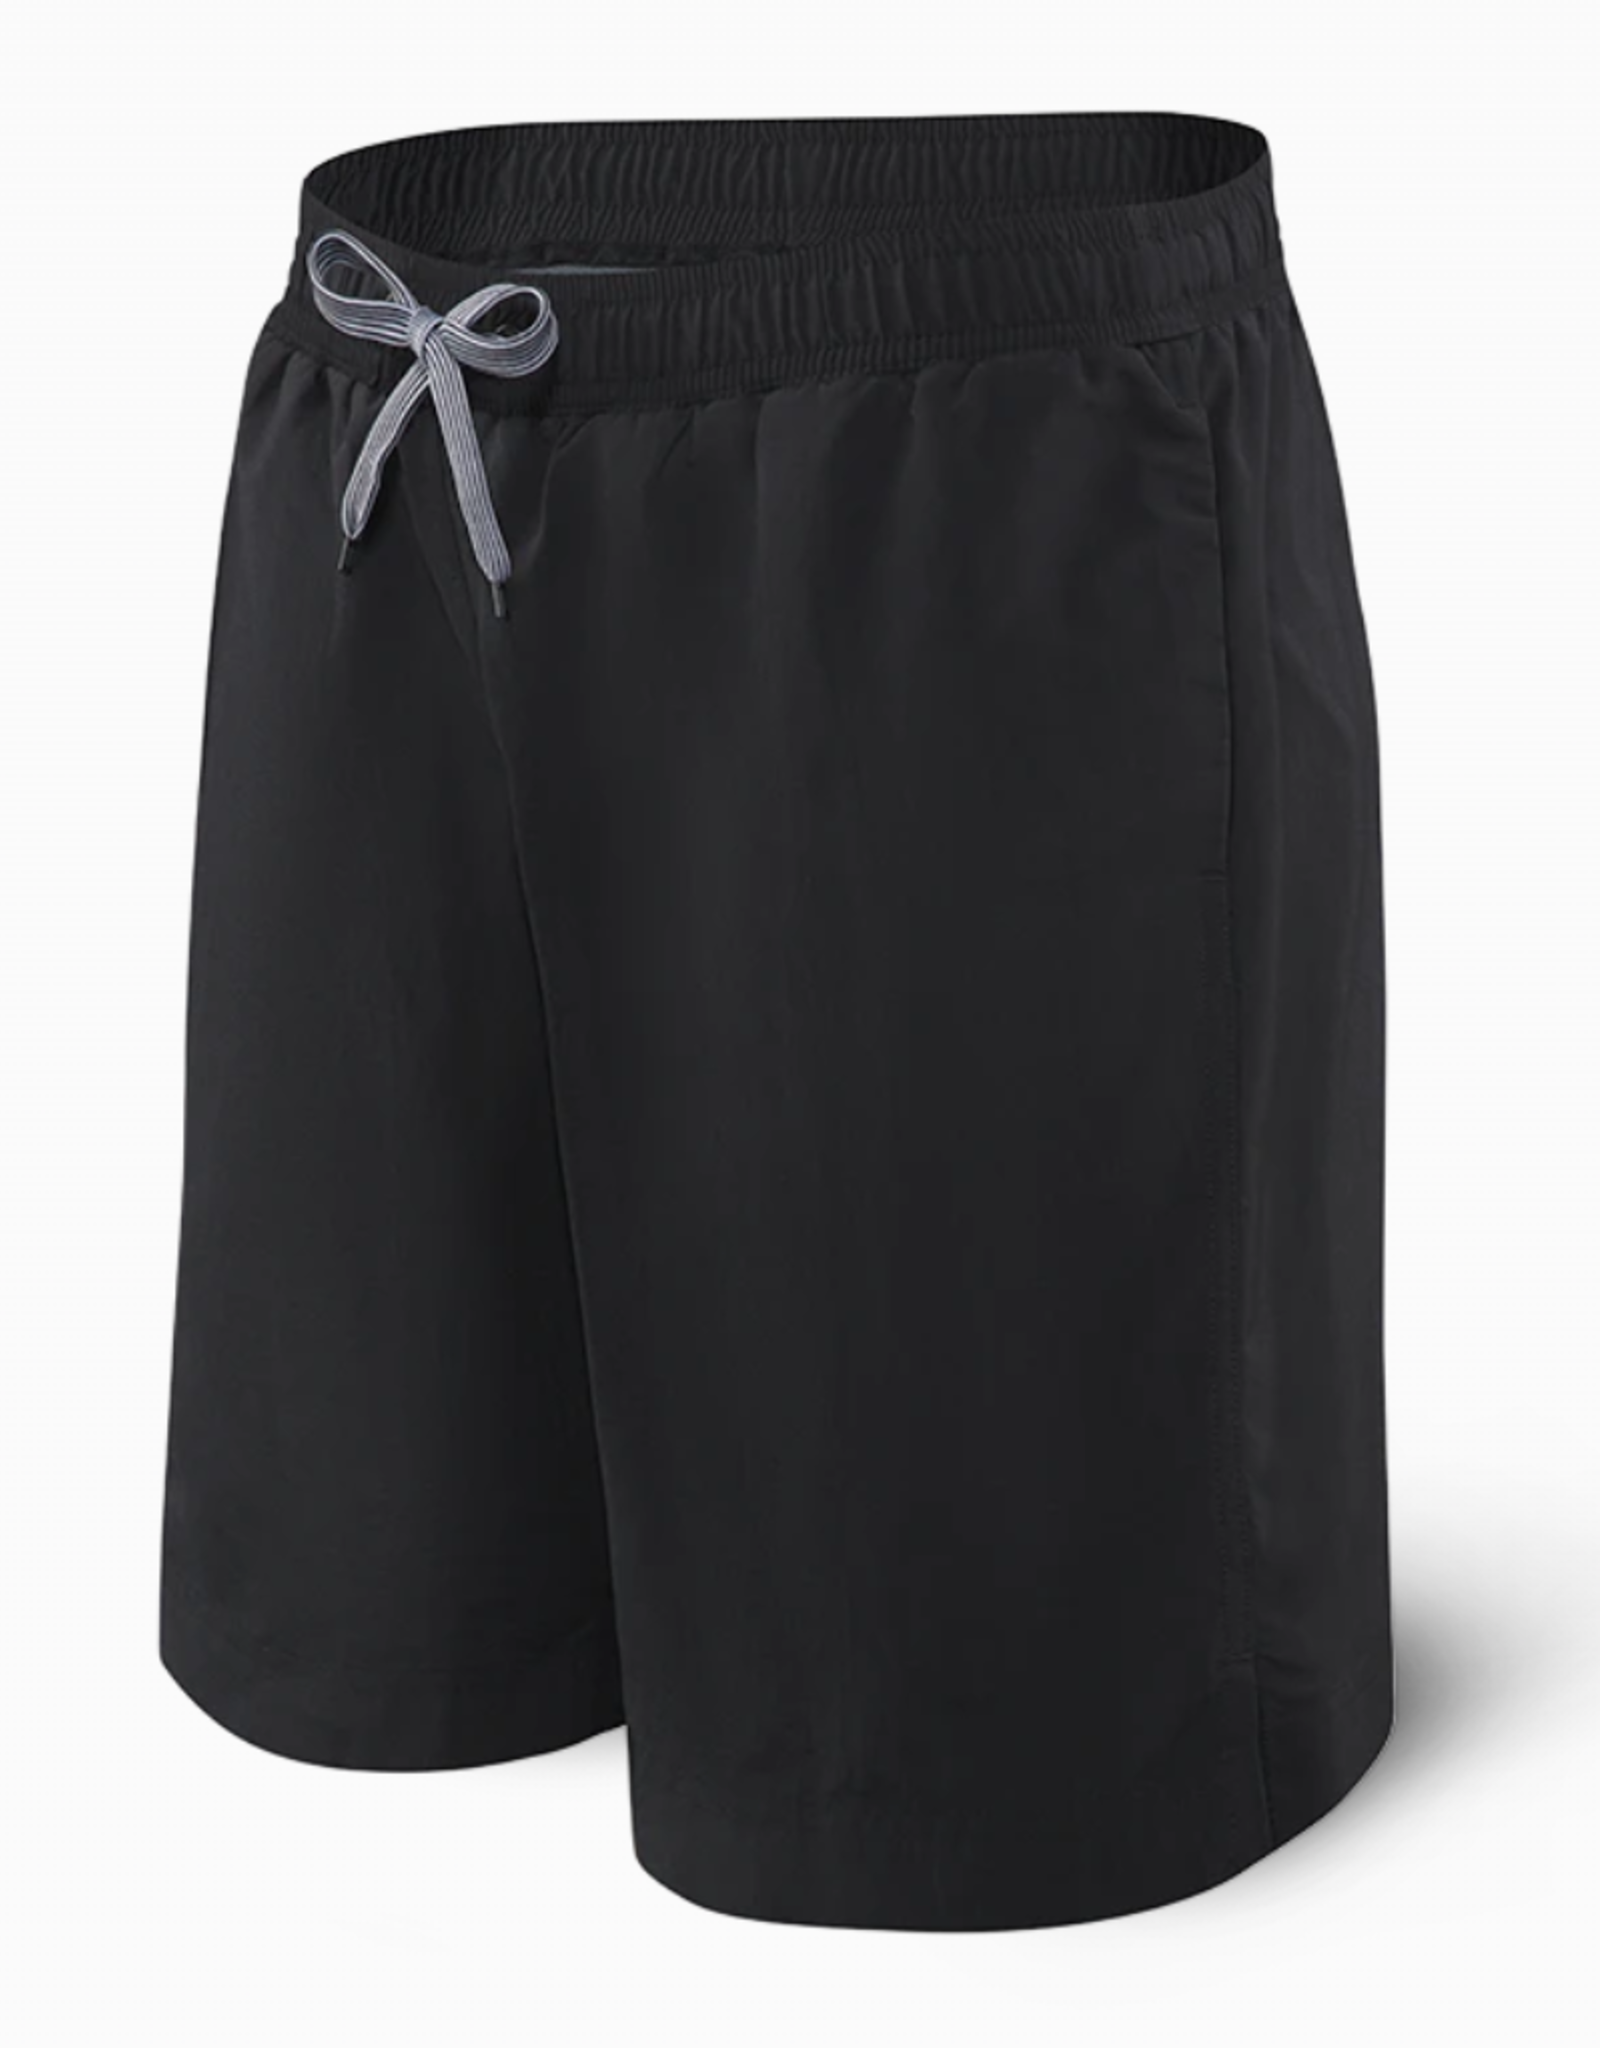 "SAXX SAXX CANNONBALL 9"" 2N1 SWIM SHORT BLACKOUT"